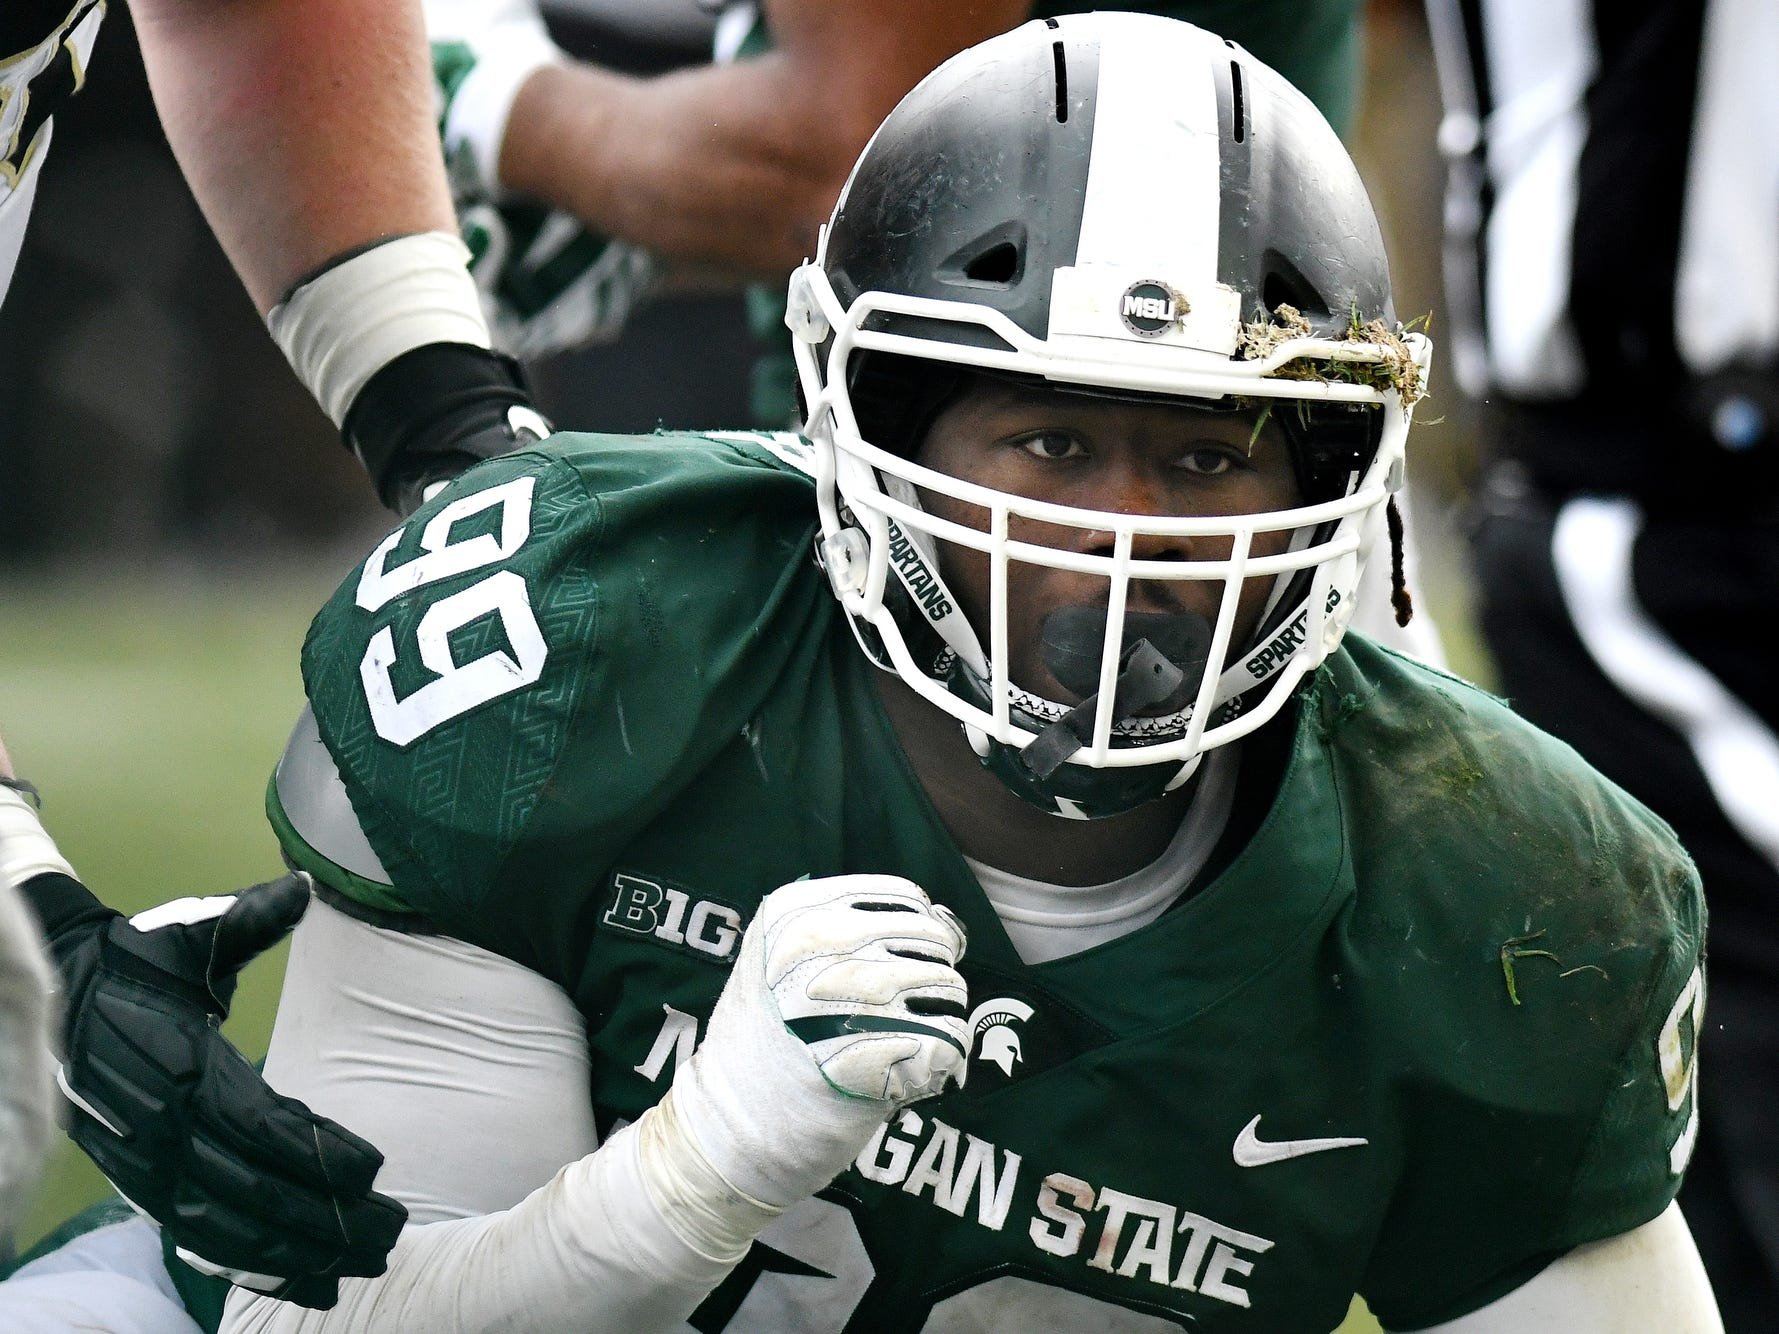 Michigan State's Raequan Williams celebrates after the Spartans stopped Purdue on a third down during the fourth quarter on Saturday, Oct. 27, 2018, at Spartan Stadium in East Lansing.